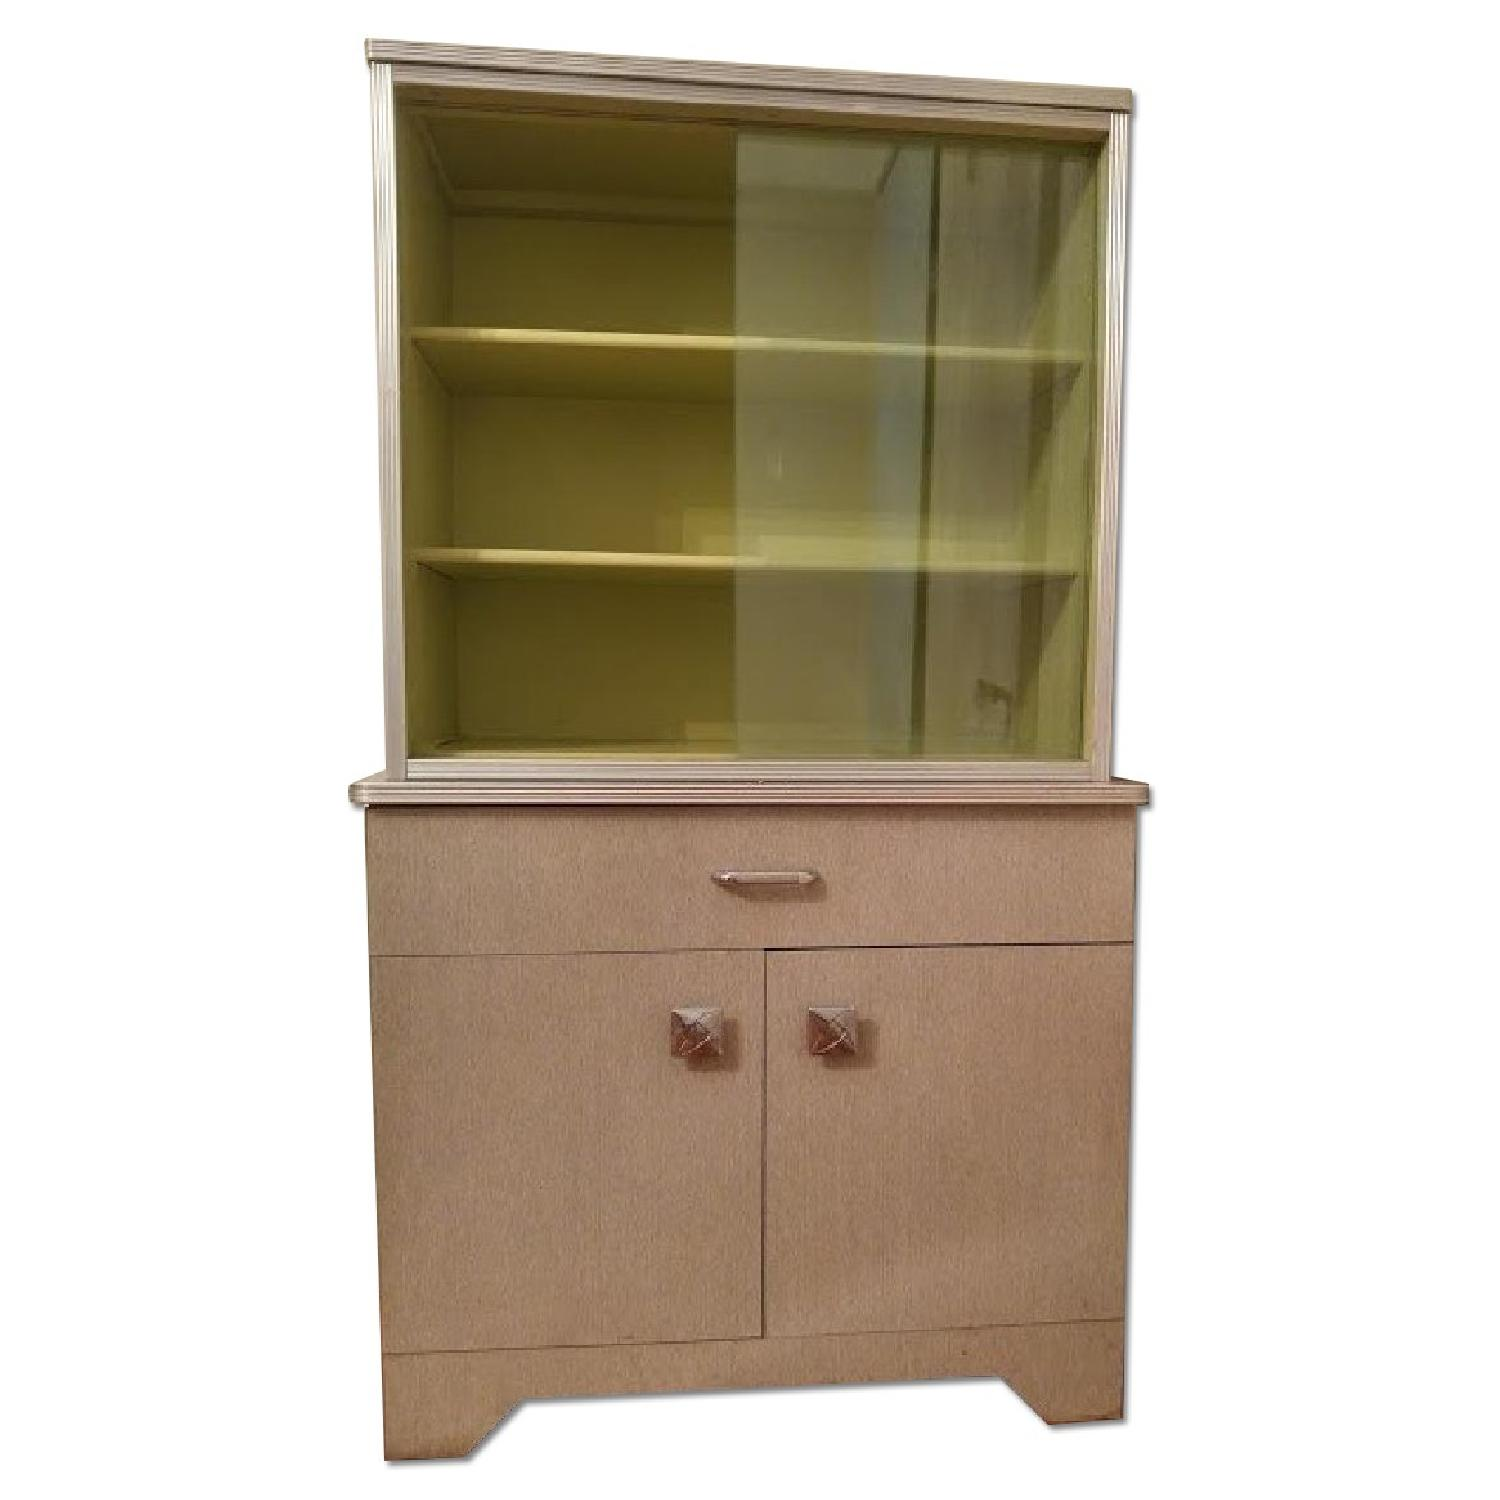 1970's Avocado Green China Cabinet w/ Sliding Glass - image-0